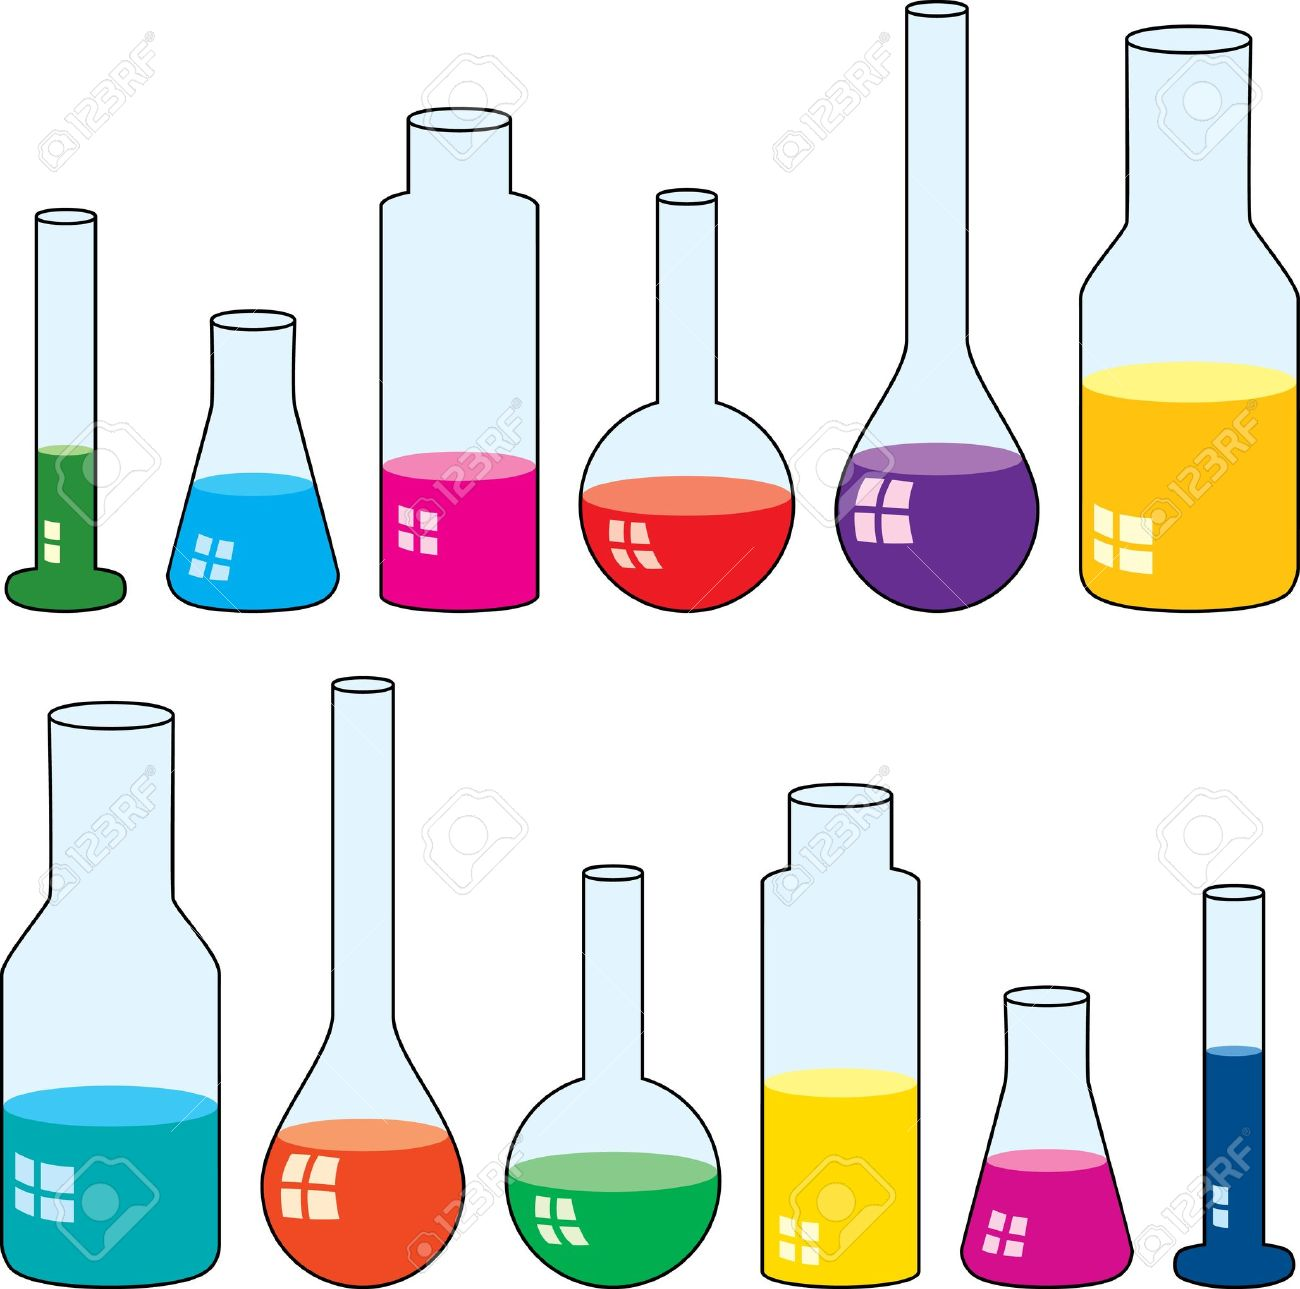 Clipart Of Laboratory Glassware Stock Vector